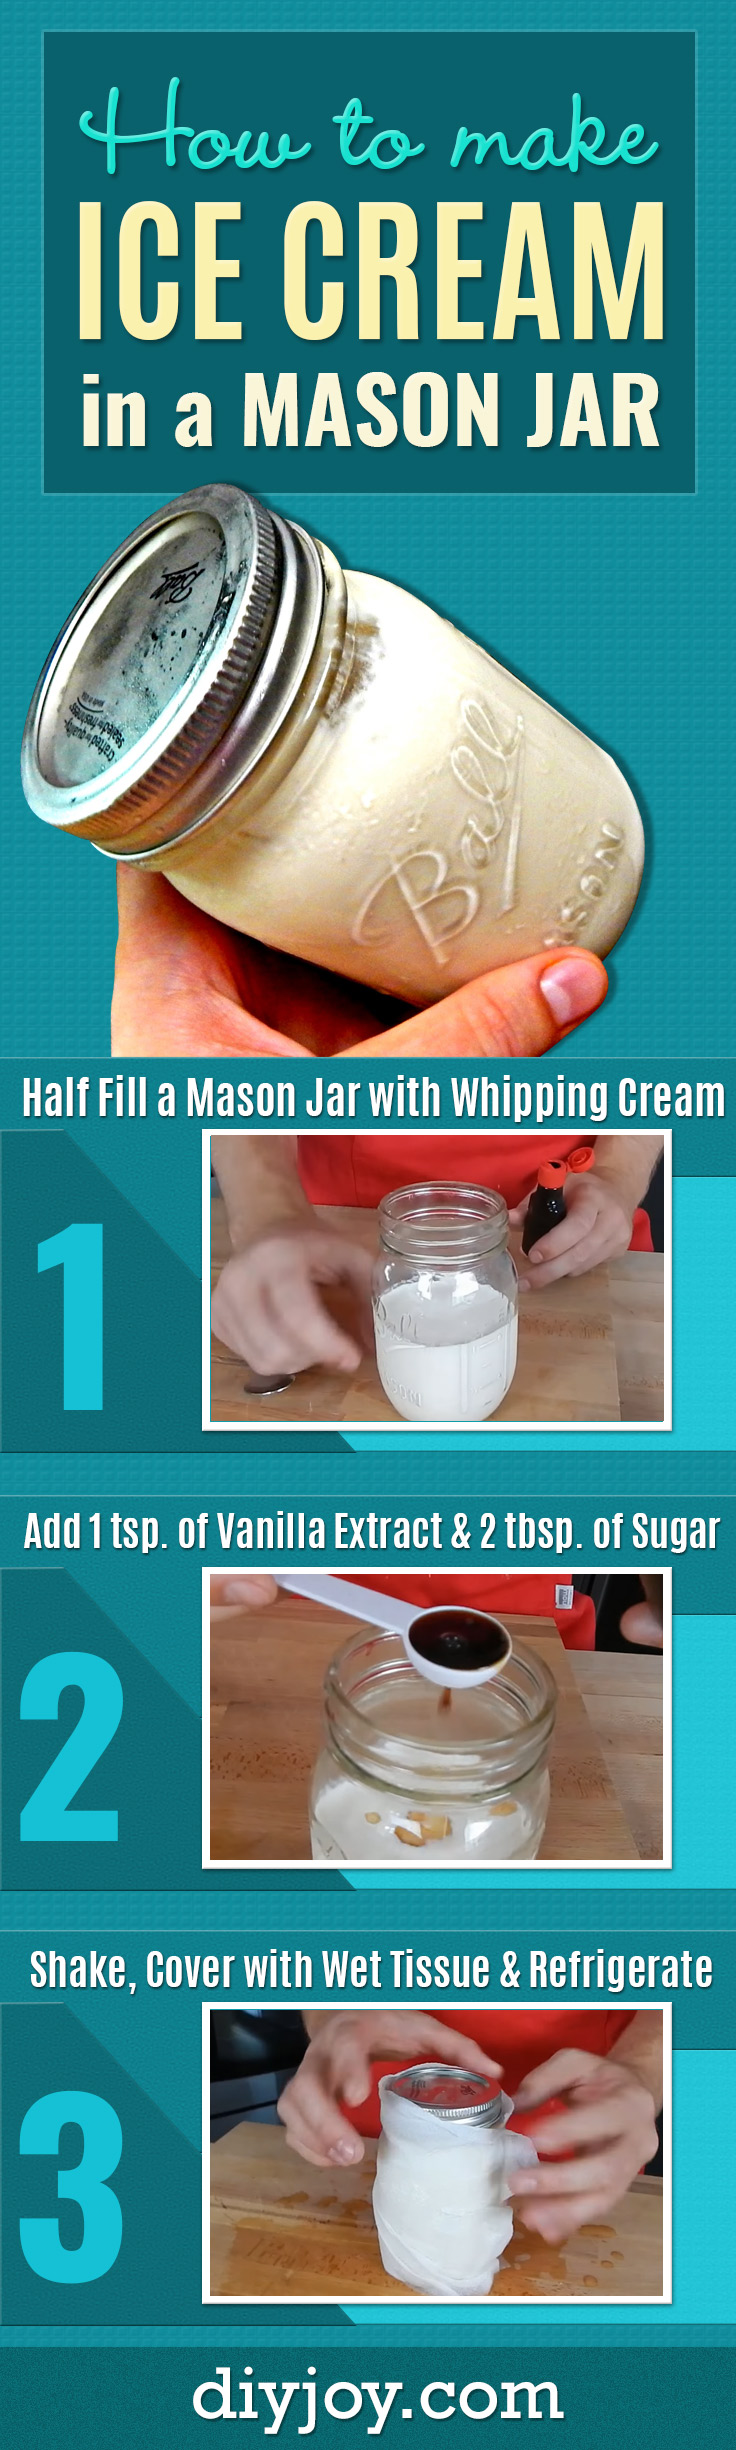 Mason Jar Ice Cream Recipe